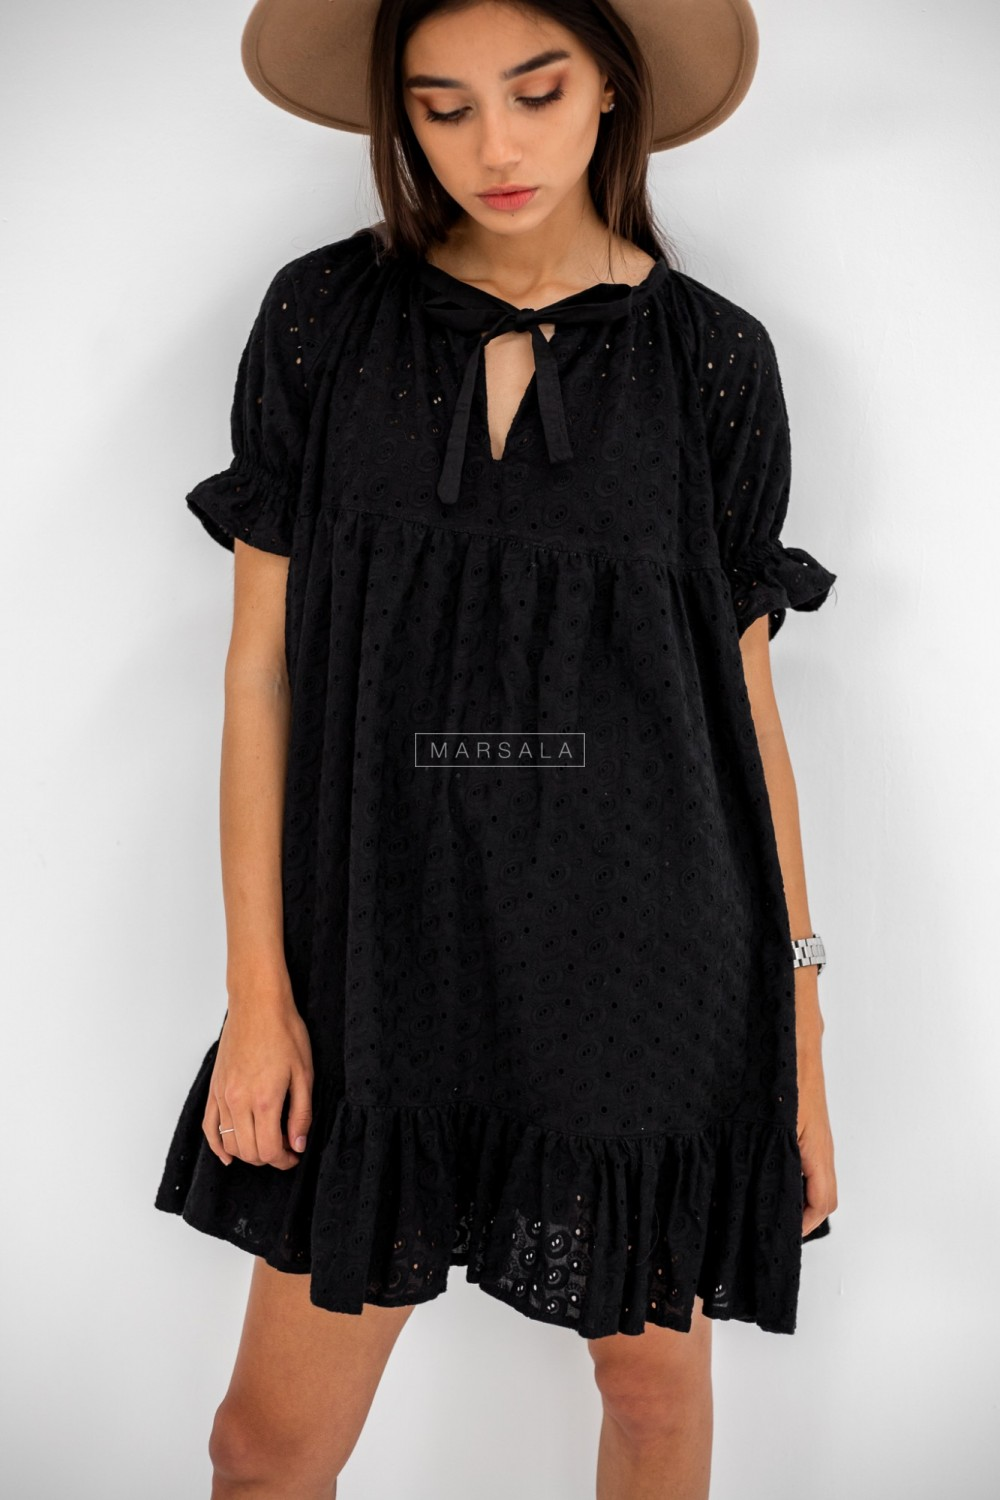 Openwork dress with black oversize cut - CLARITY BLACK by Marsala